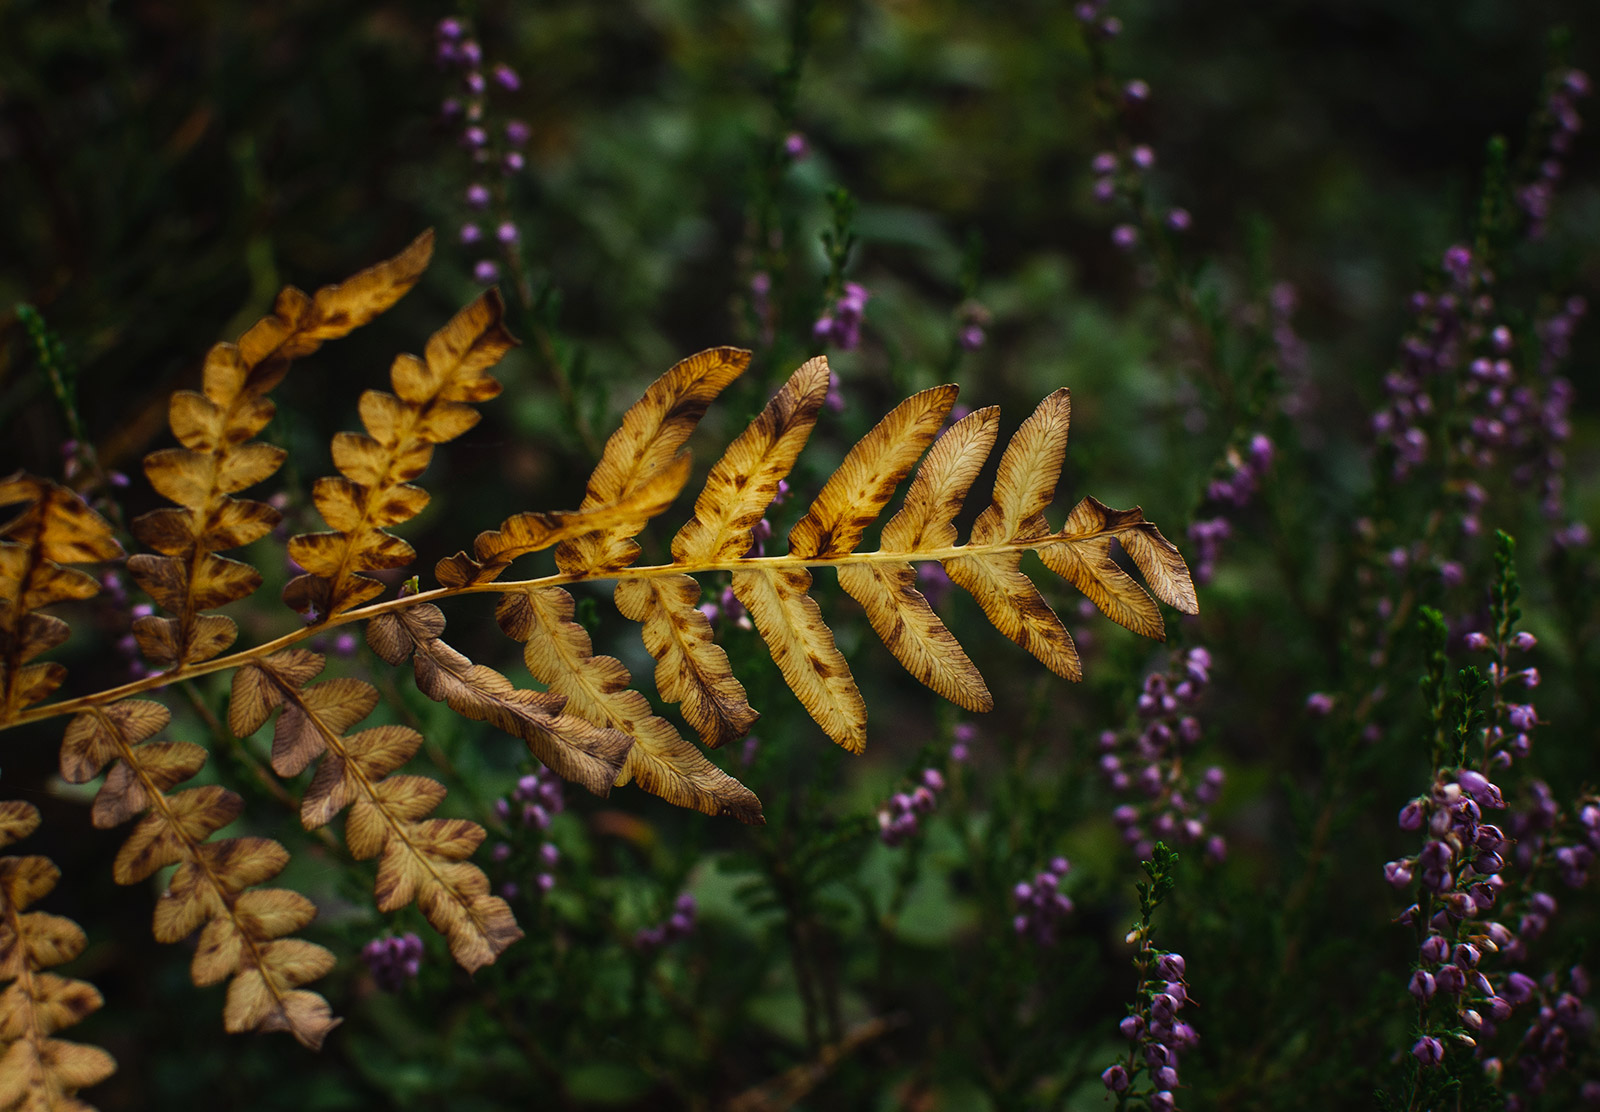 Golden fern leaves